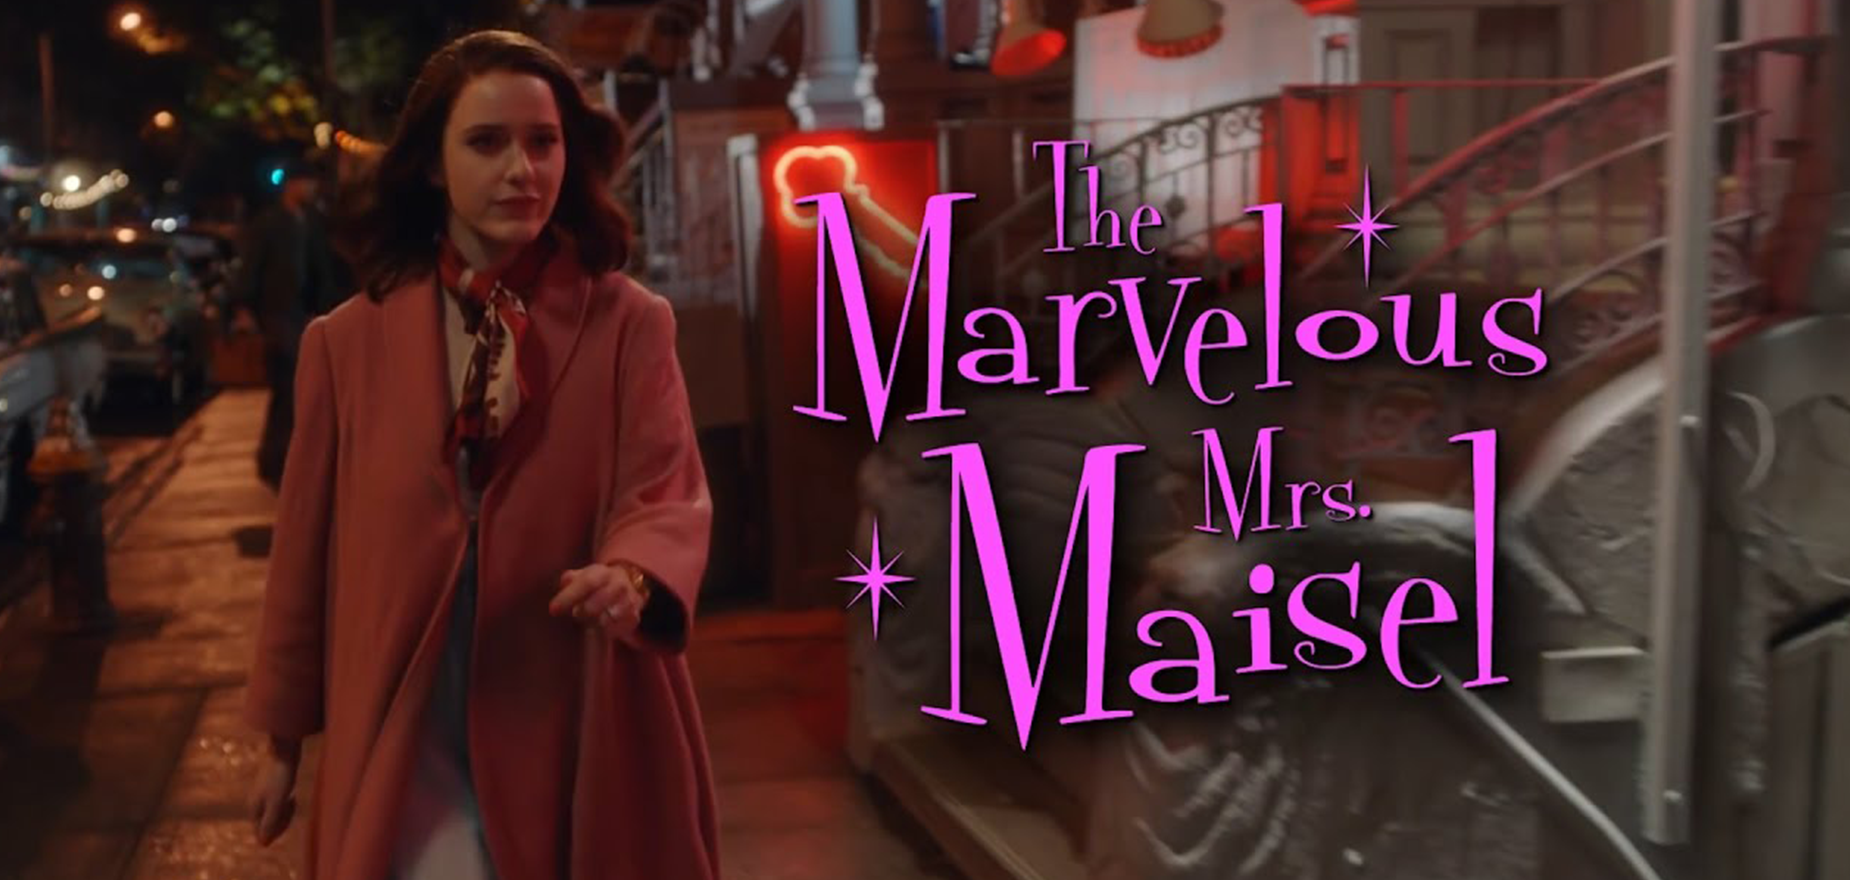 The Marvelous Mrs. Maisel - Amazon Studios